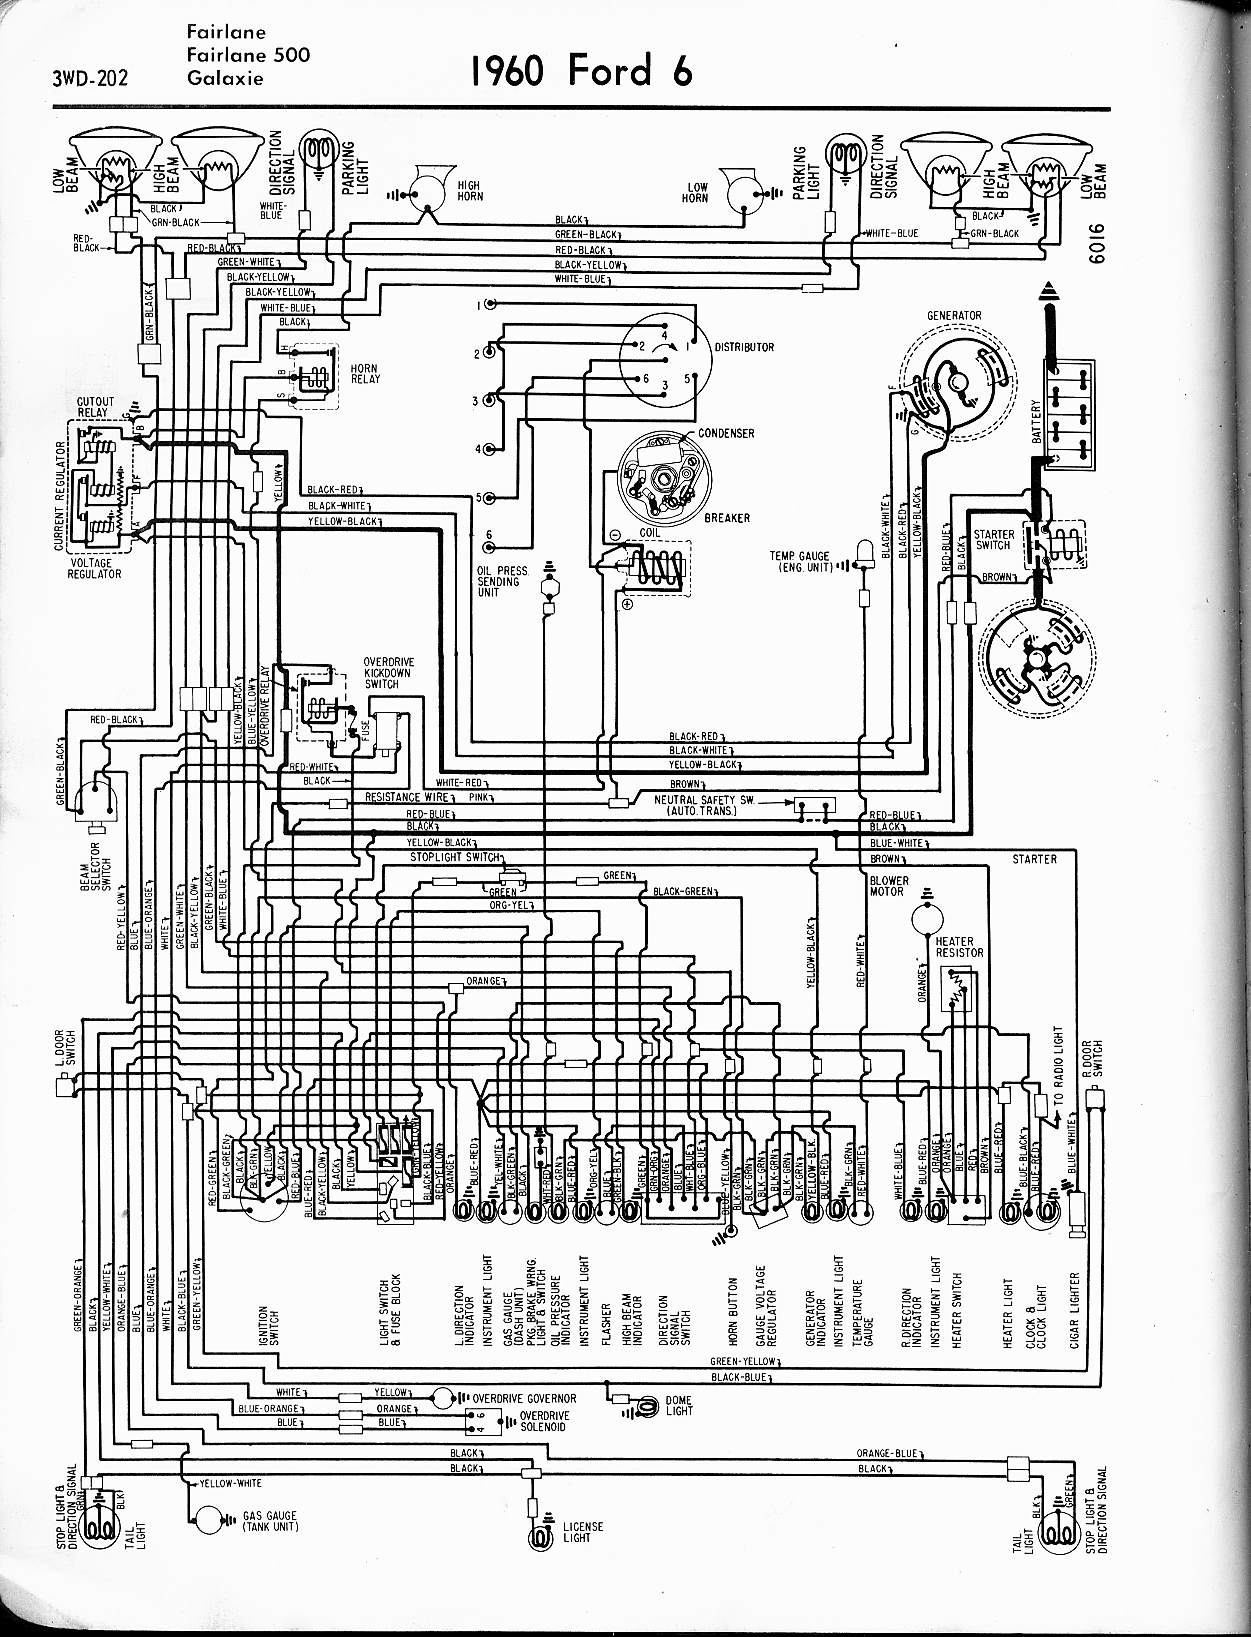 MWire5765 202 57 65 ford wiring diagrams ford truck wiring diagrams at fashall.co